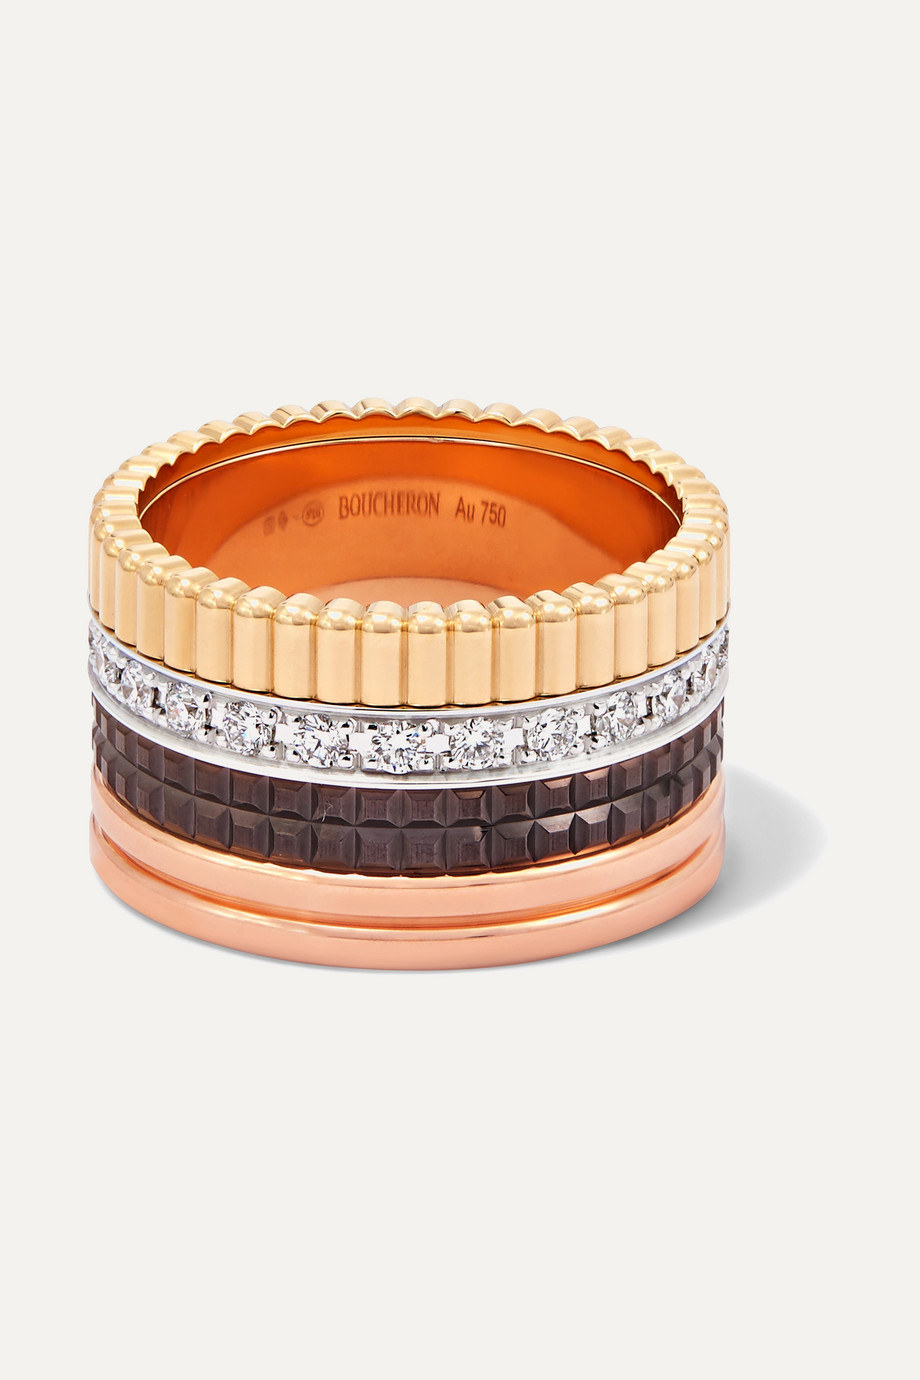 BOUCHERON Quatre Classique Large 18-karat yellow, rose and white gold diamond ring